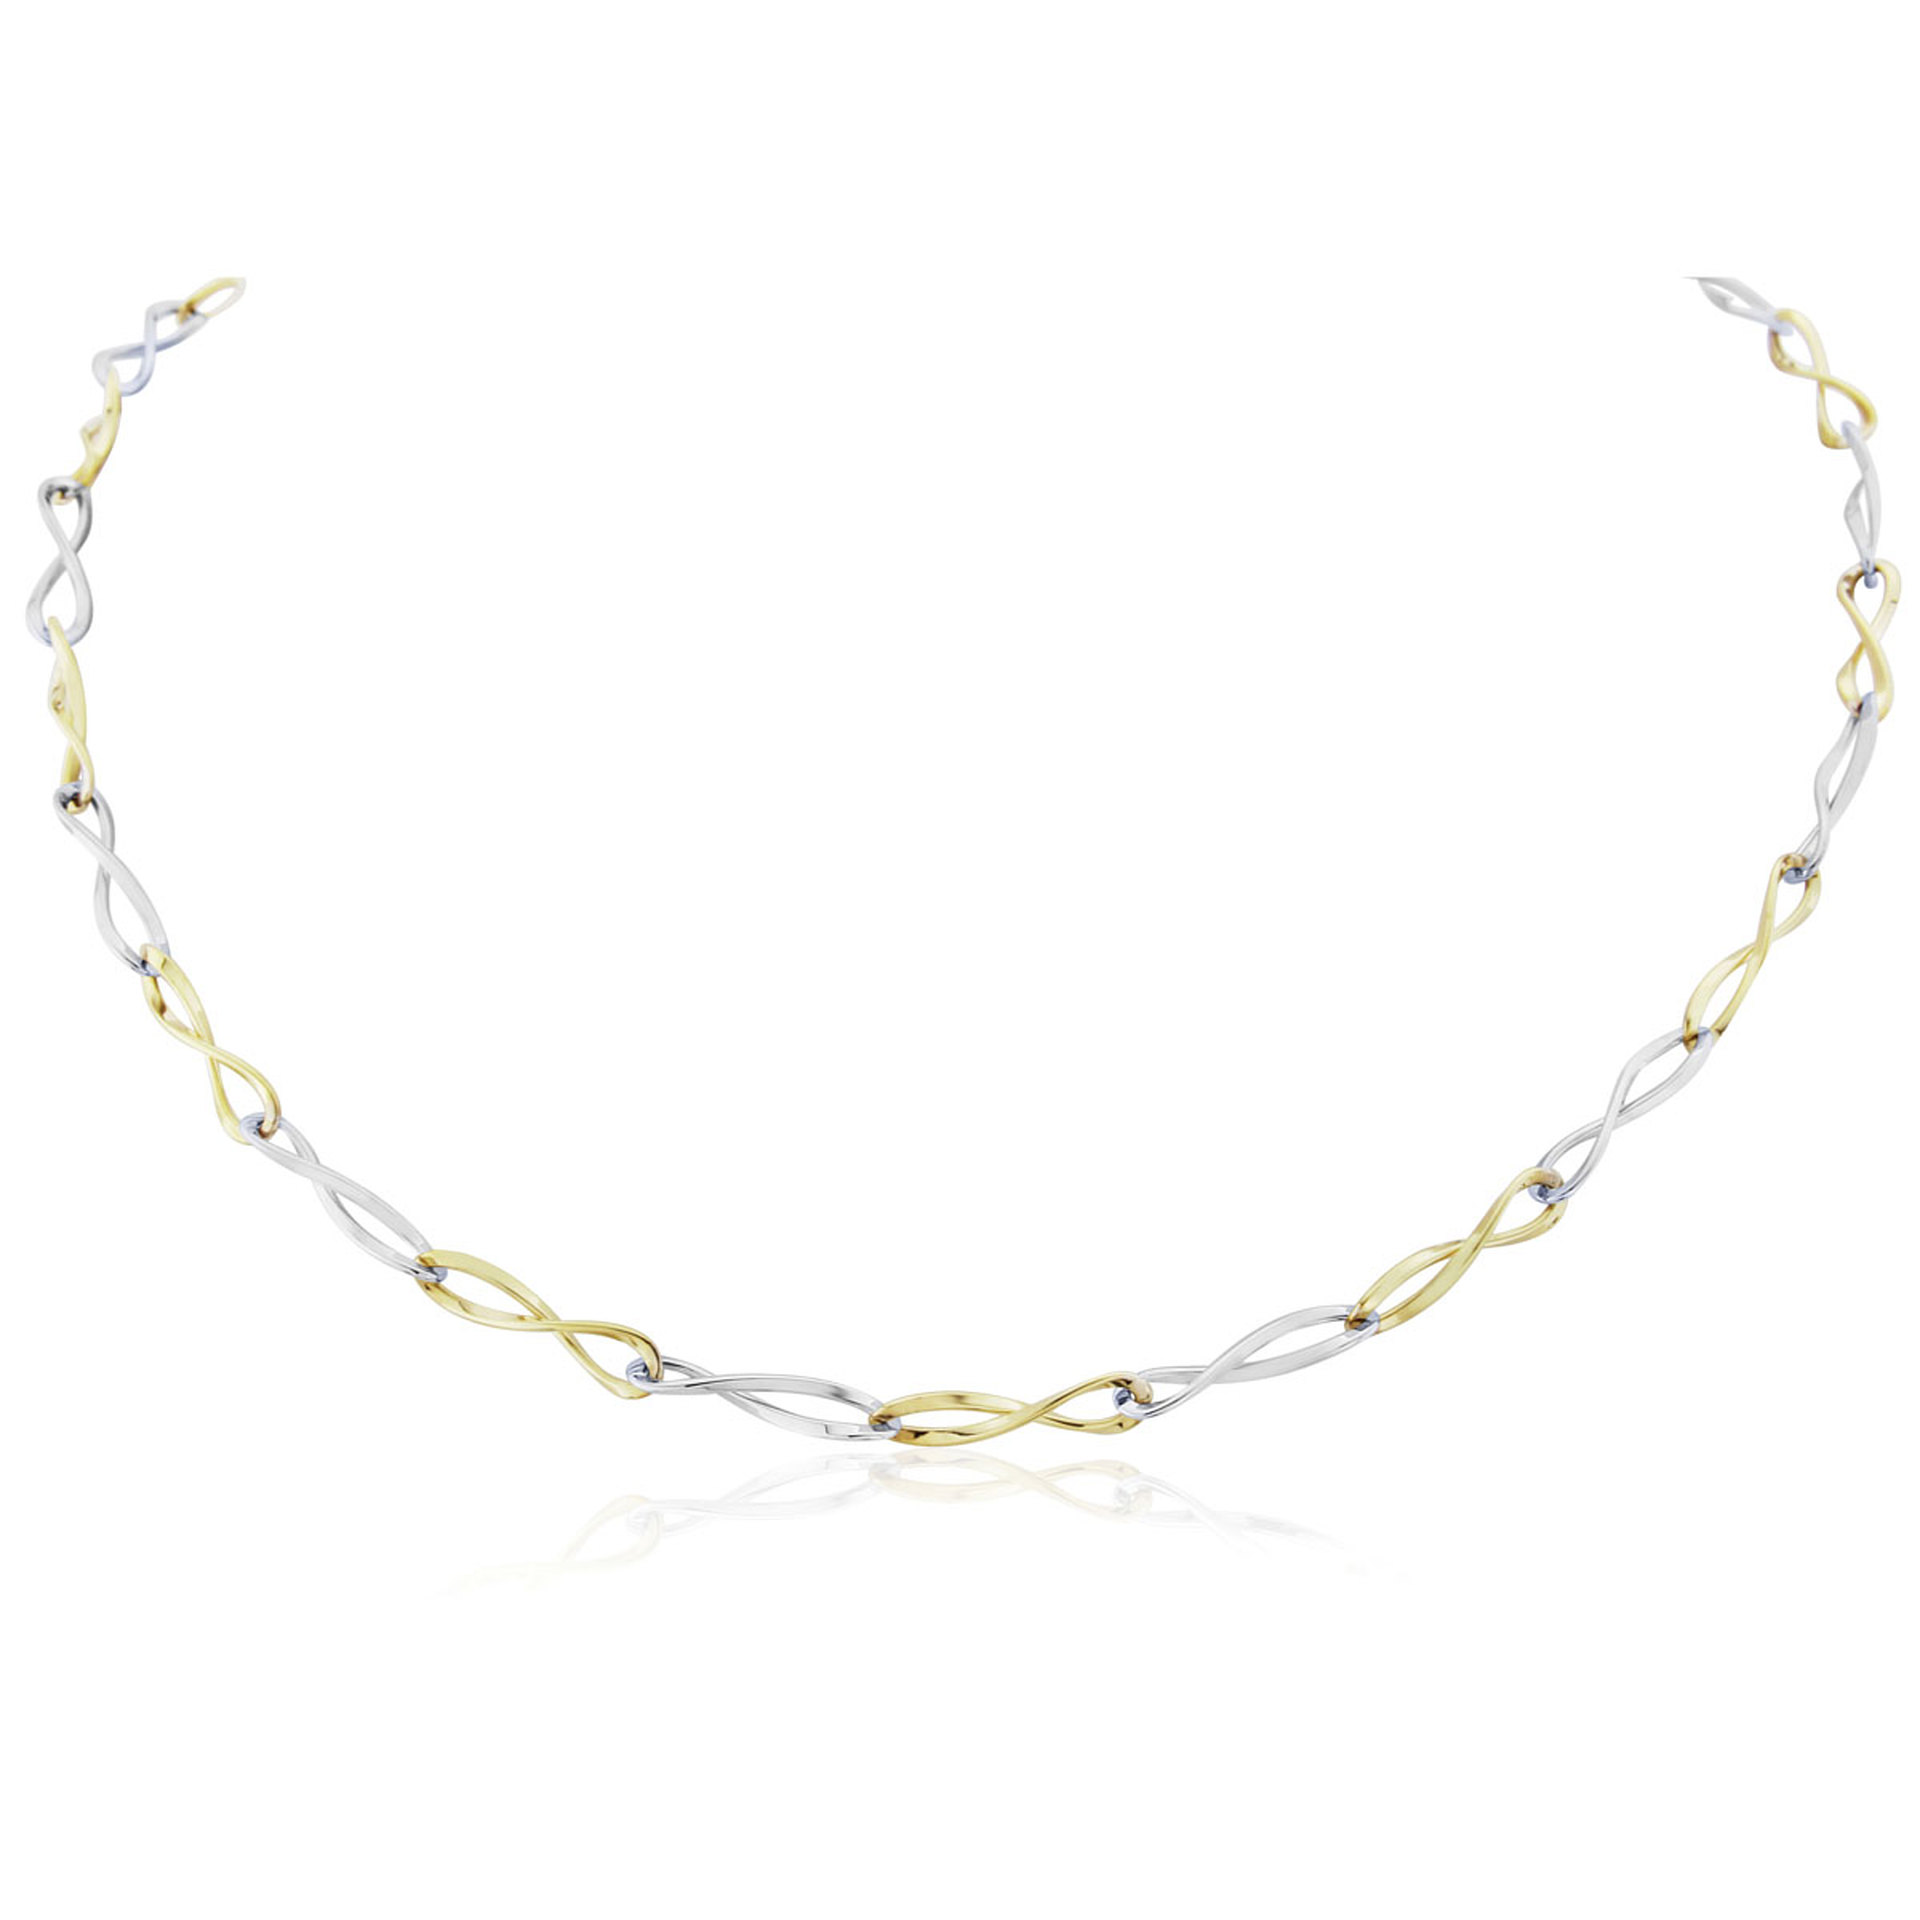 9ct White and Yellow Gold Twisted Link Necklet